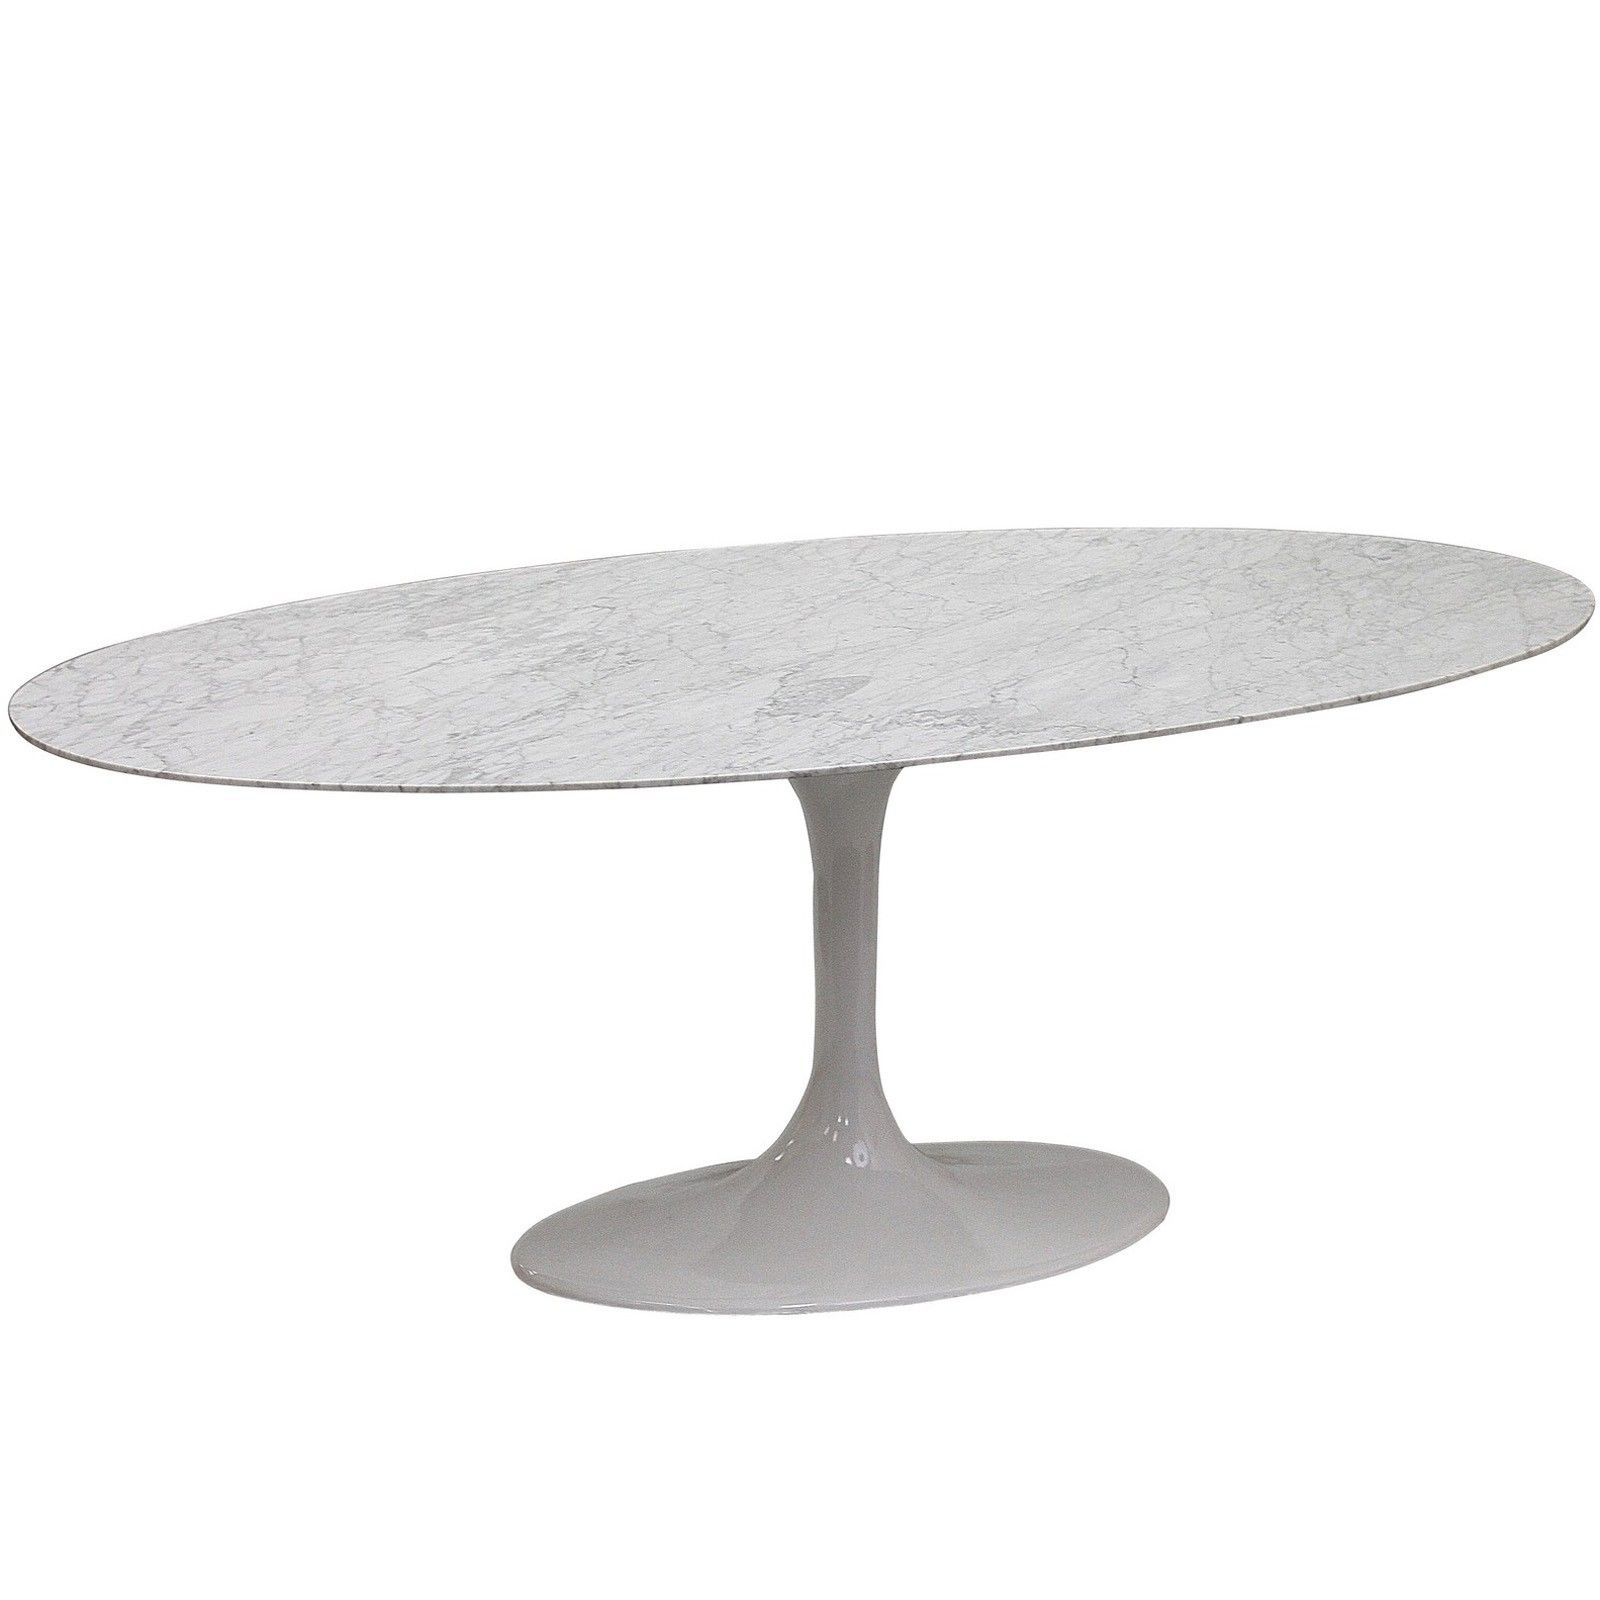 Saarinen Style 78 Oval Marble Tulip Table Multiple Colors Designer Reproduction Mid Century Mode Marble Top Dining Table Dining Table Marble Dining Table